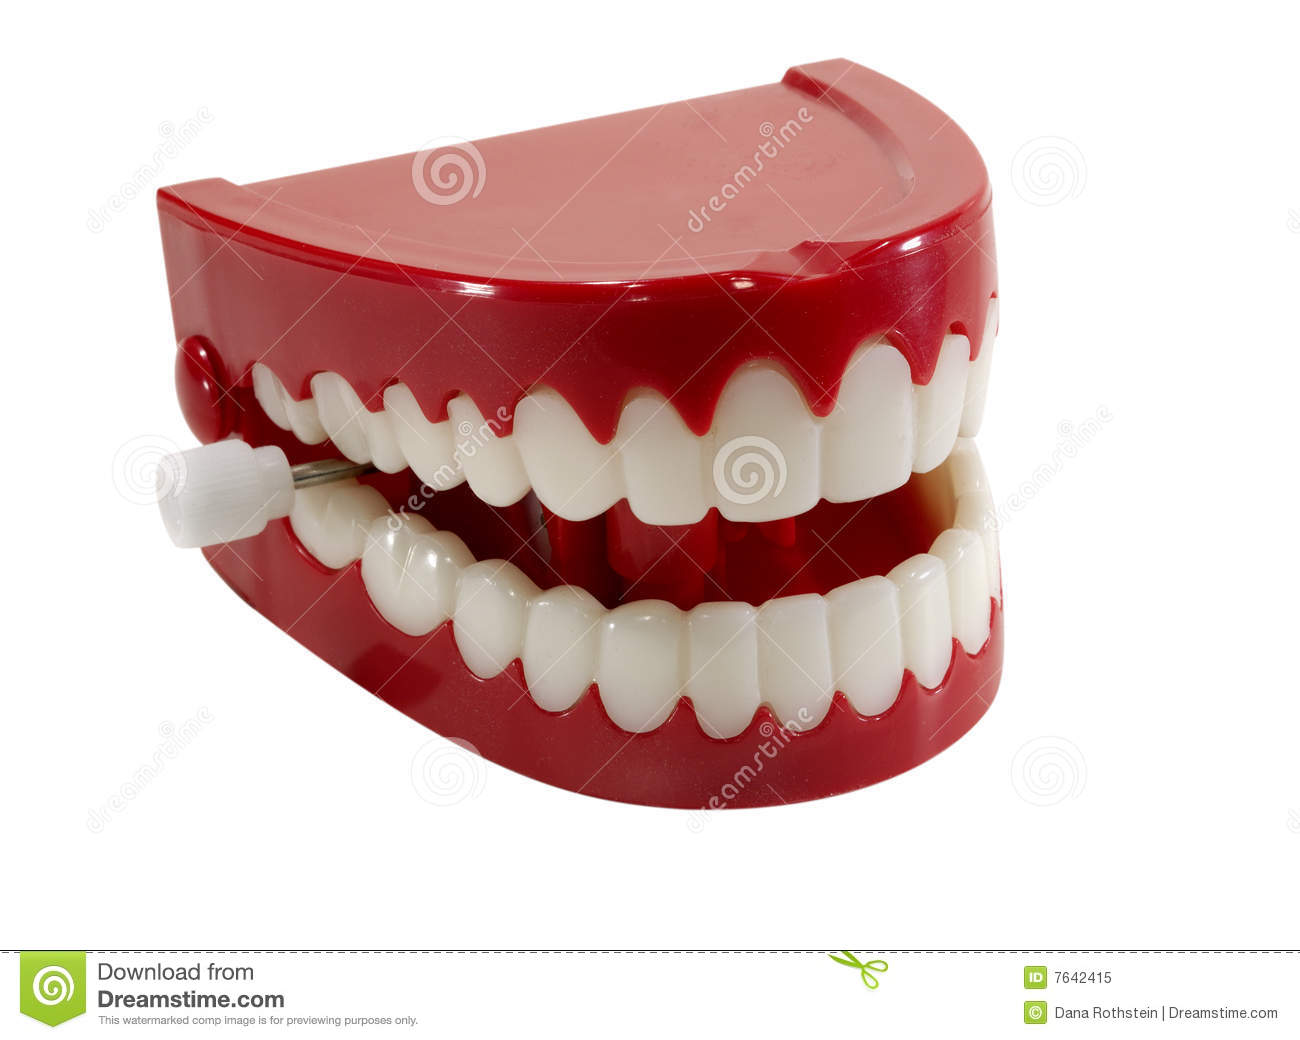 Kitchen cabinet clipart - Chatter Teeth Royalty Free Stock Photo Image 7642415